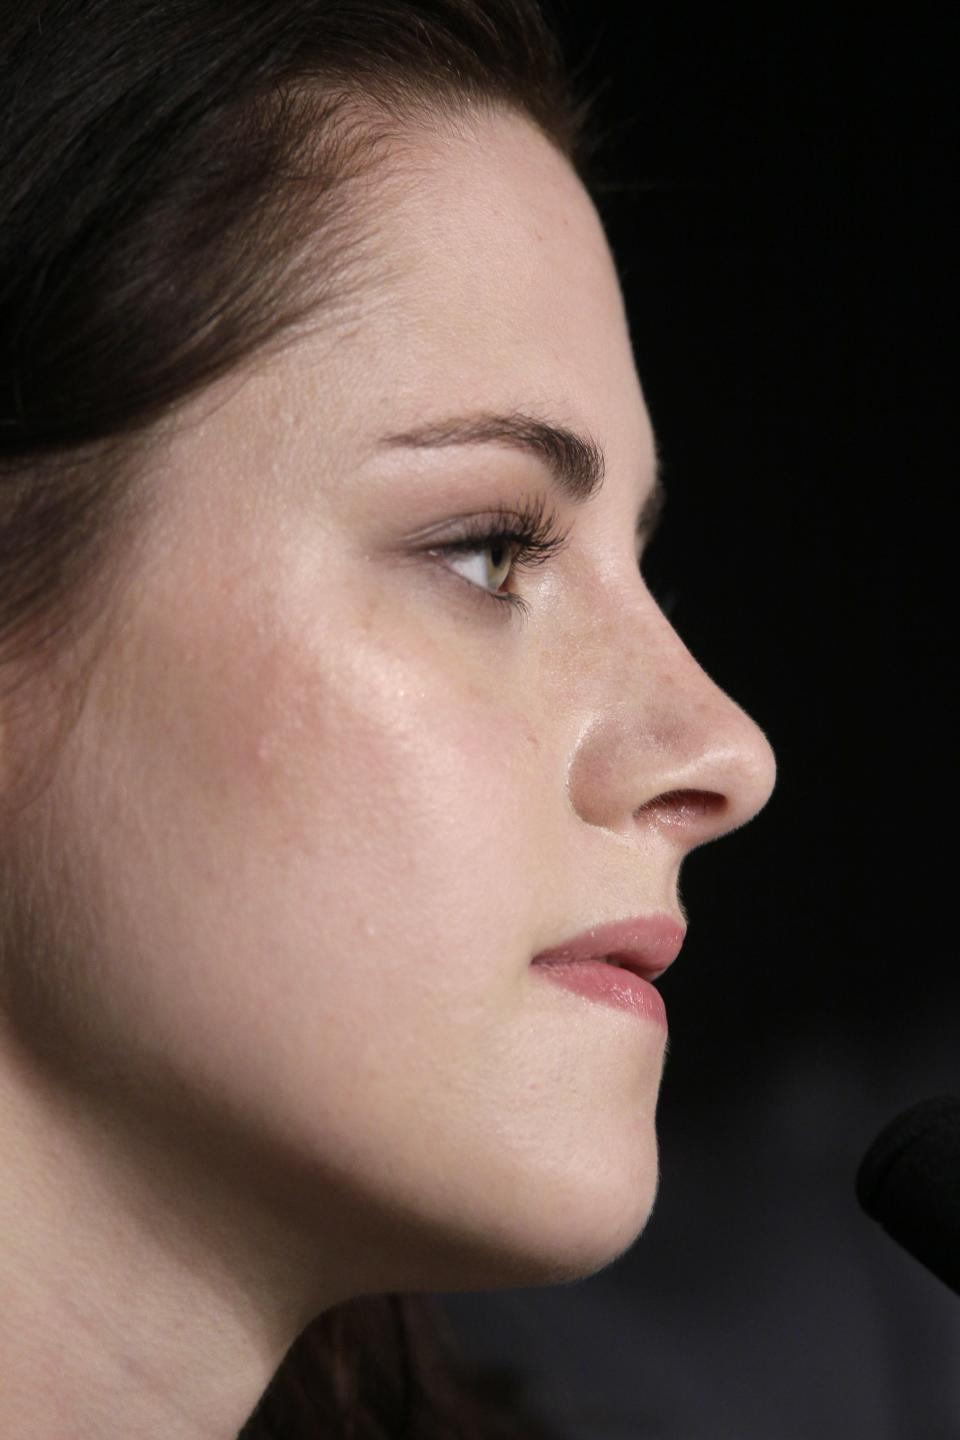 Actress Kristen Stewart listens during a press conference for On the Road at the 65th international film festival, in Cannes, southern France, Wednesday, May 23, 2012. (AP Photo/Francois Mori)